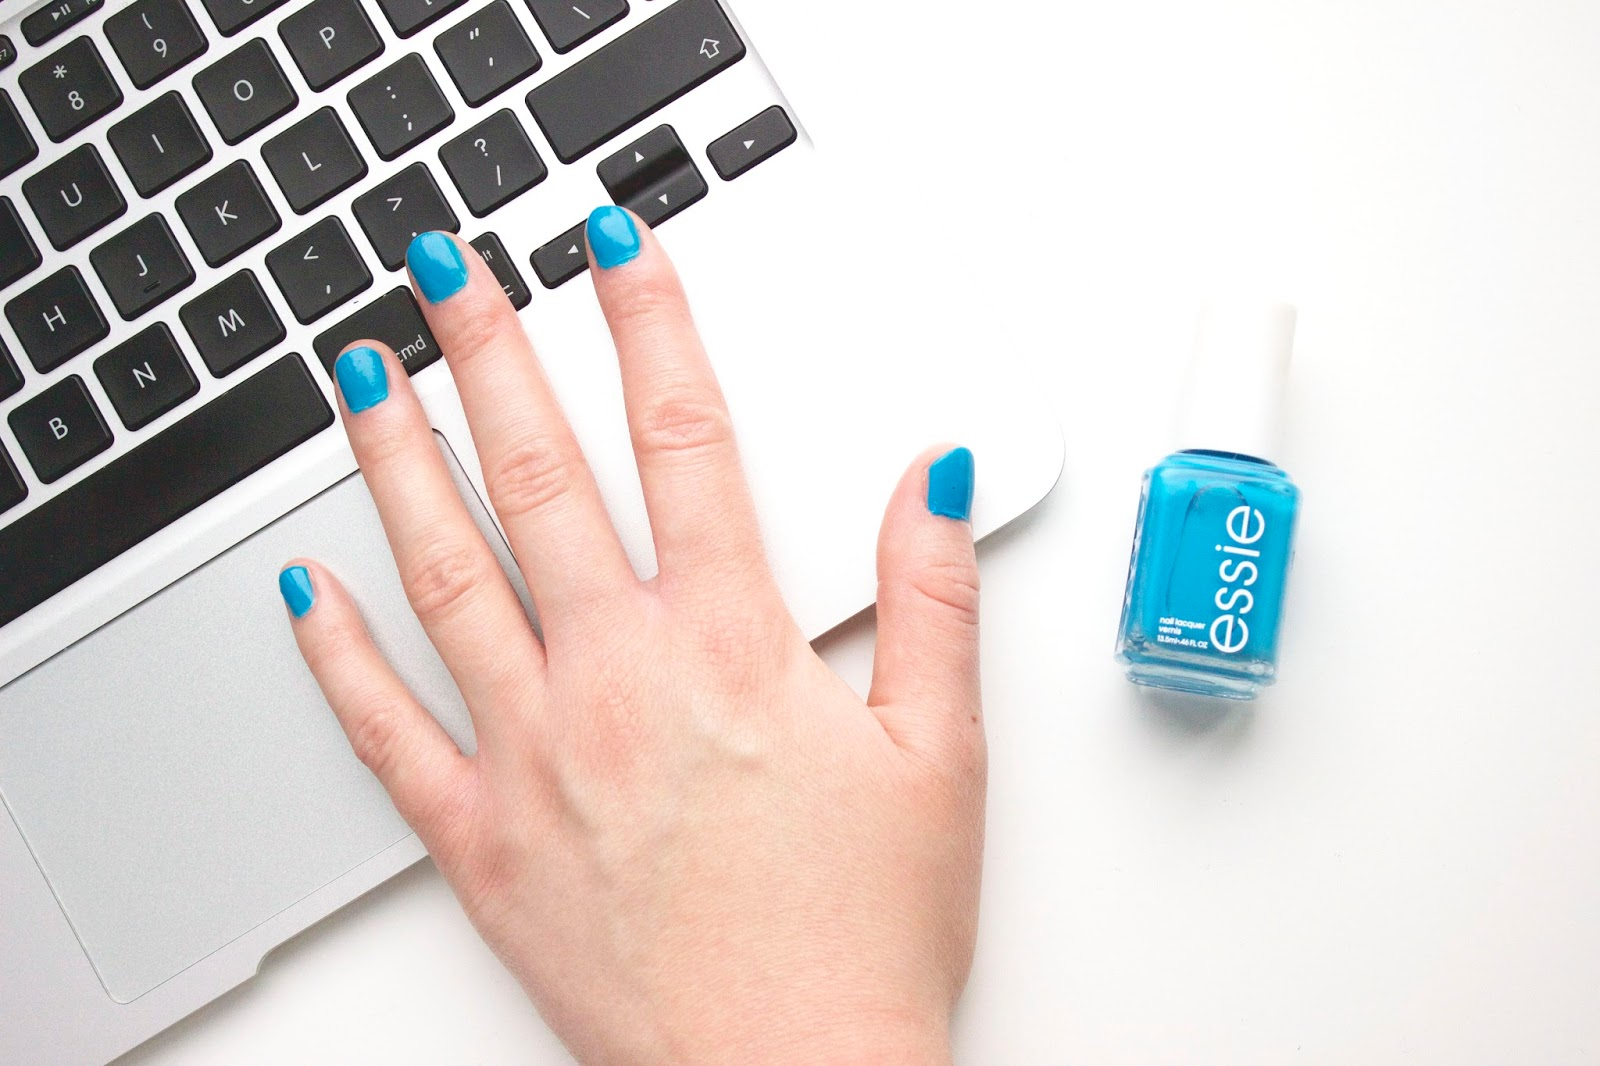 Essie Strut Your Stuff, Essie, Nails, Beauty, Beauty Blog, Blue nails, Blue Nail Polish, Macbook,